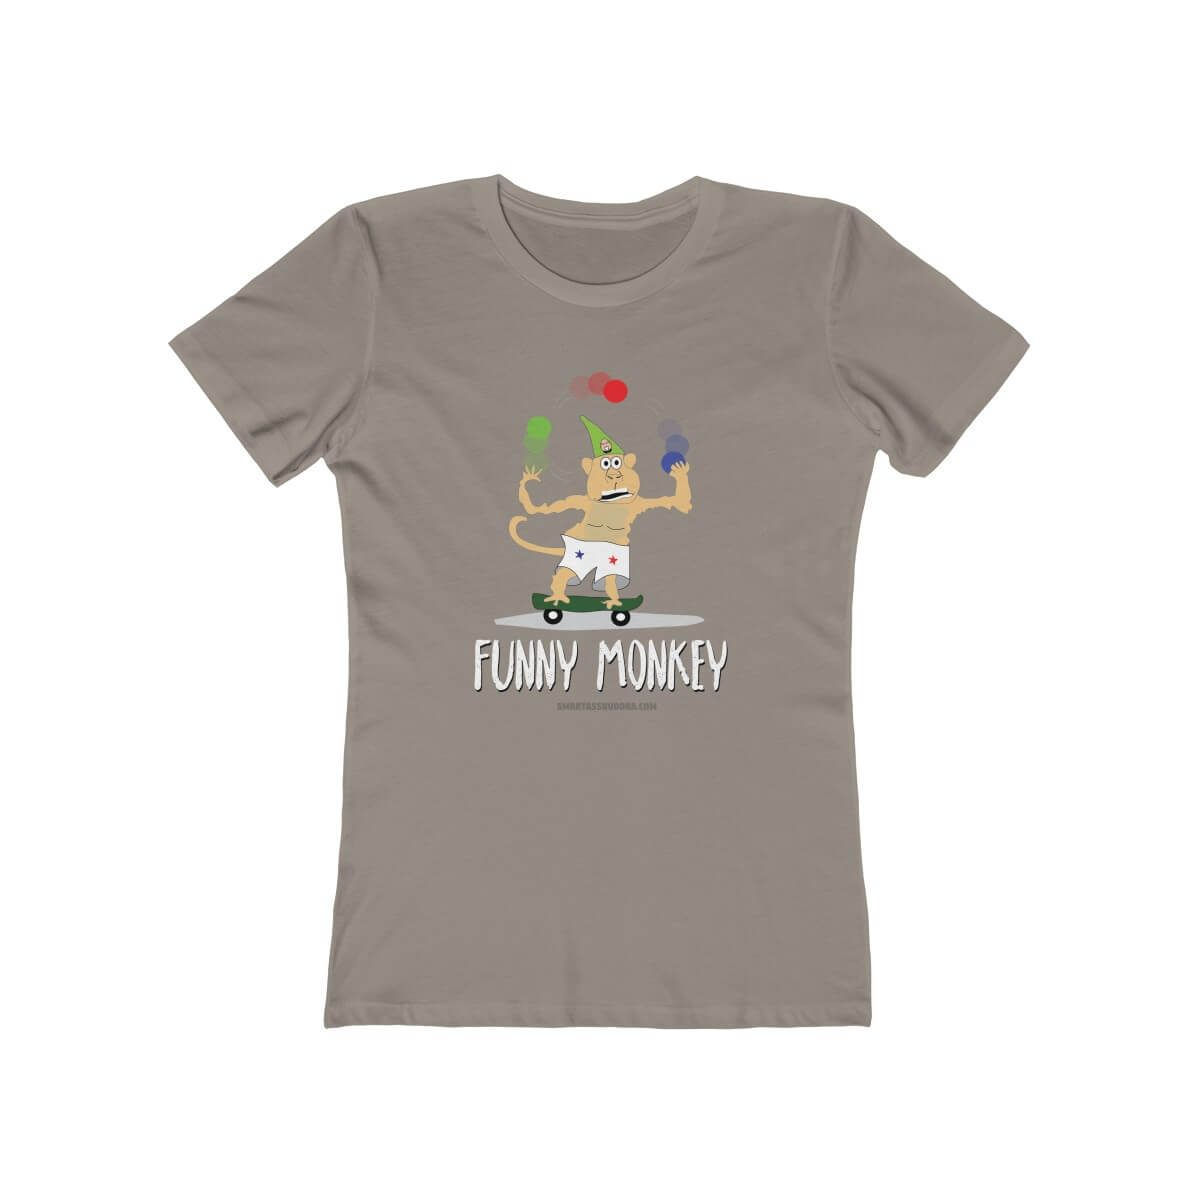 funny-monkey-tshirt-cool-animals-funnky-cool-gift-grey